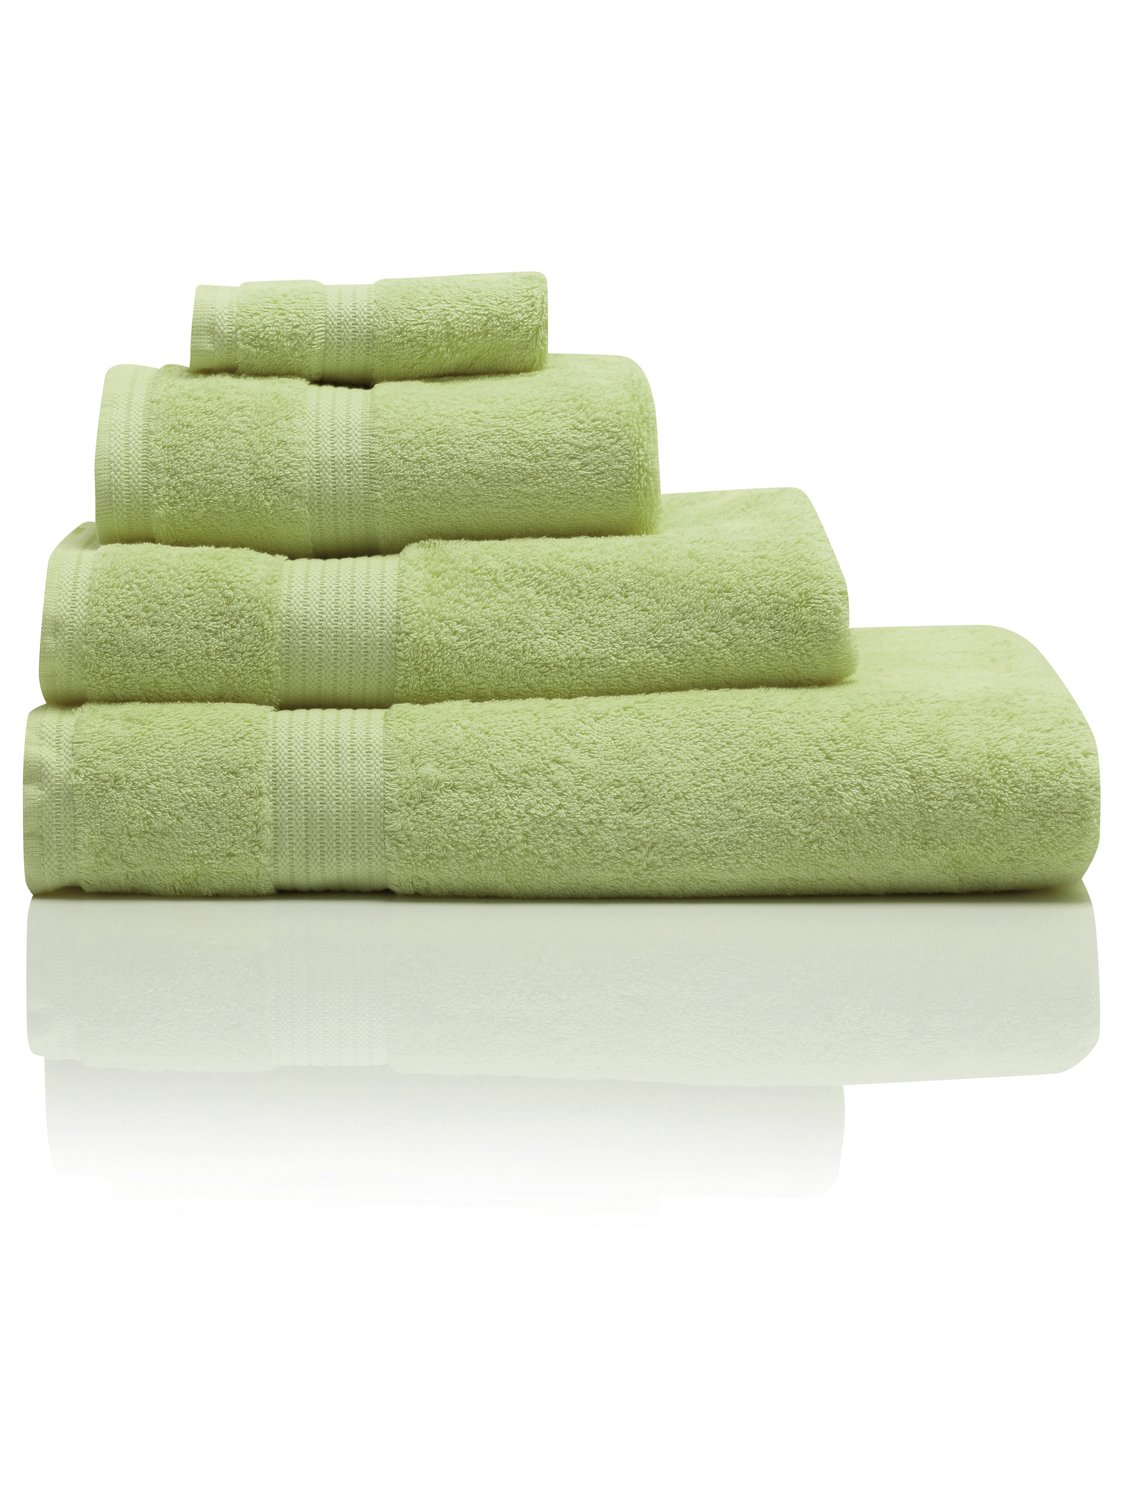 Image of 100% Combed Cotton 580Gsm Luxury Soft And Absorbent Bath Sheet - Apple Green